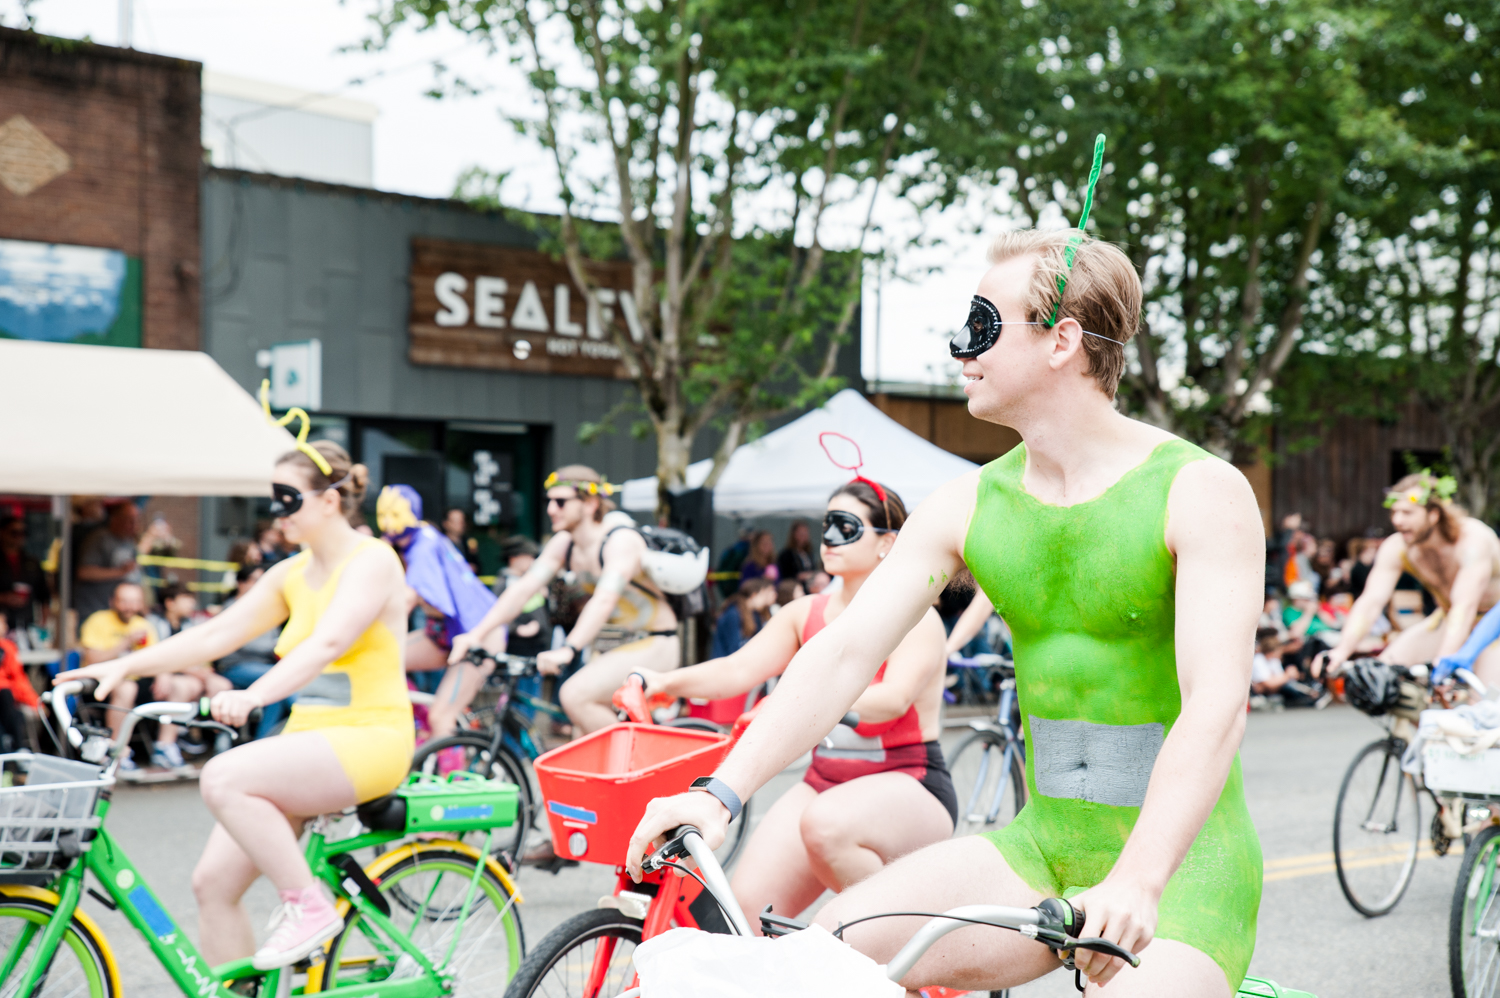 "2019 Fremont Solstice Parade. Today we're celebrating what would have been the 2020 Fremont Solstice Parade with a look back at parades past and remembering how downright wild and wacky they are. We know you're missing that creative release Seattle - we are too! The Fremont Artist Council is{&nbsp;}<a  href=""https://fremontartscouncil.org/parade/"" target=""_blank"" title=""https://fremontartscouncil.org/parade/"">having a Virtual Parade</a>{&nbsp;}and heck, no judgment from us if you want to watch it naked or with body paint on. See you next year… (Image: Elizabeth Crook / Seattle Refined)"